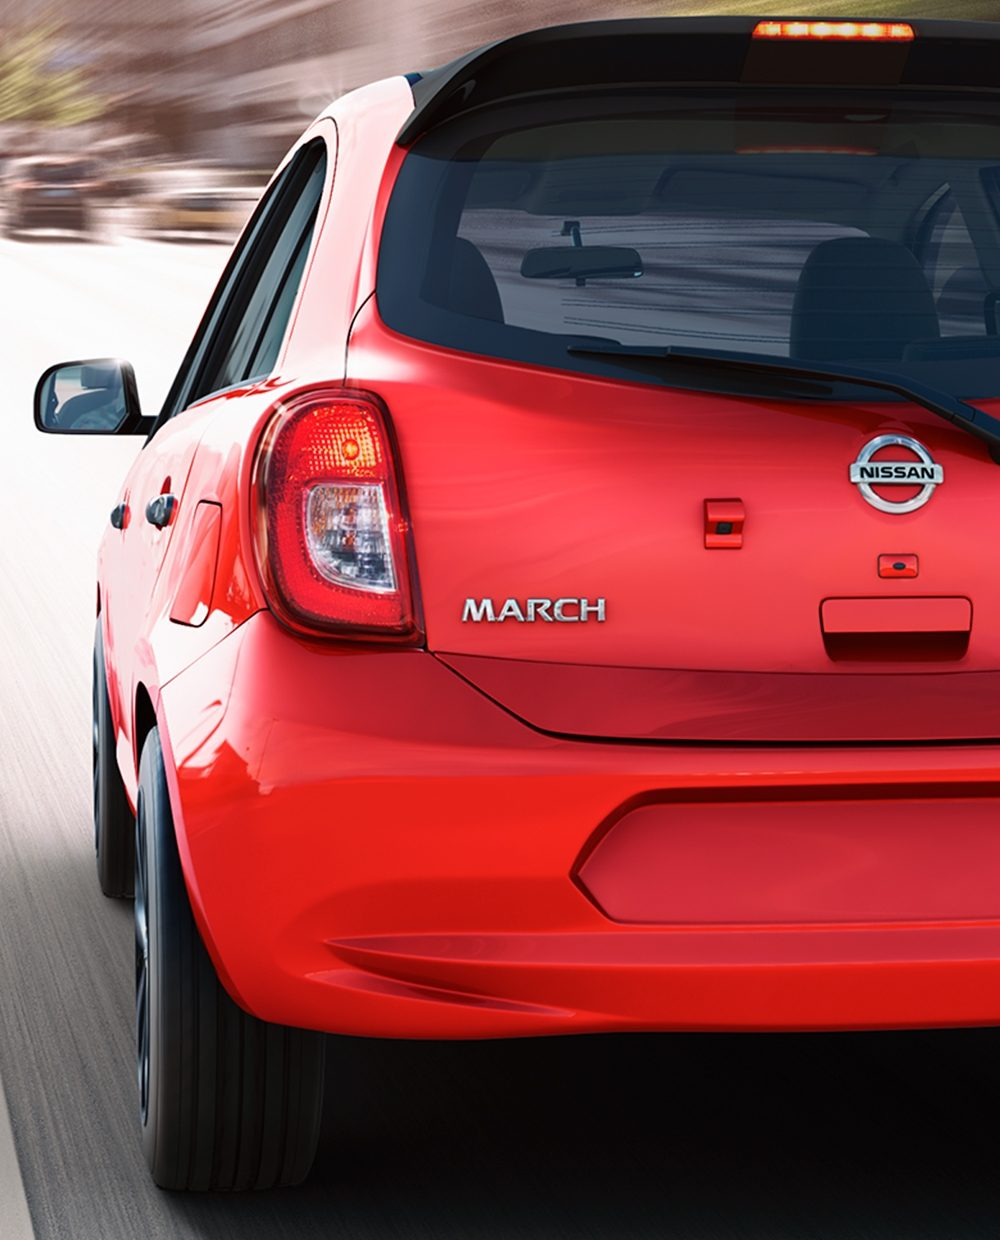 March Nissan Mexico